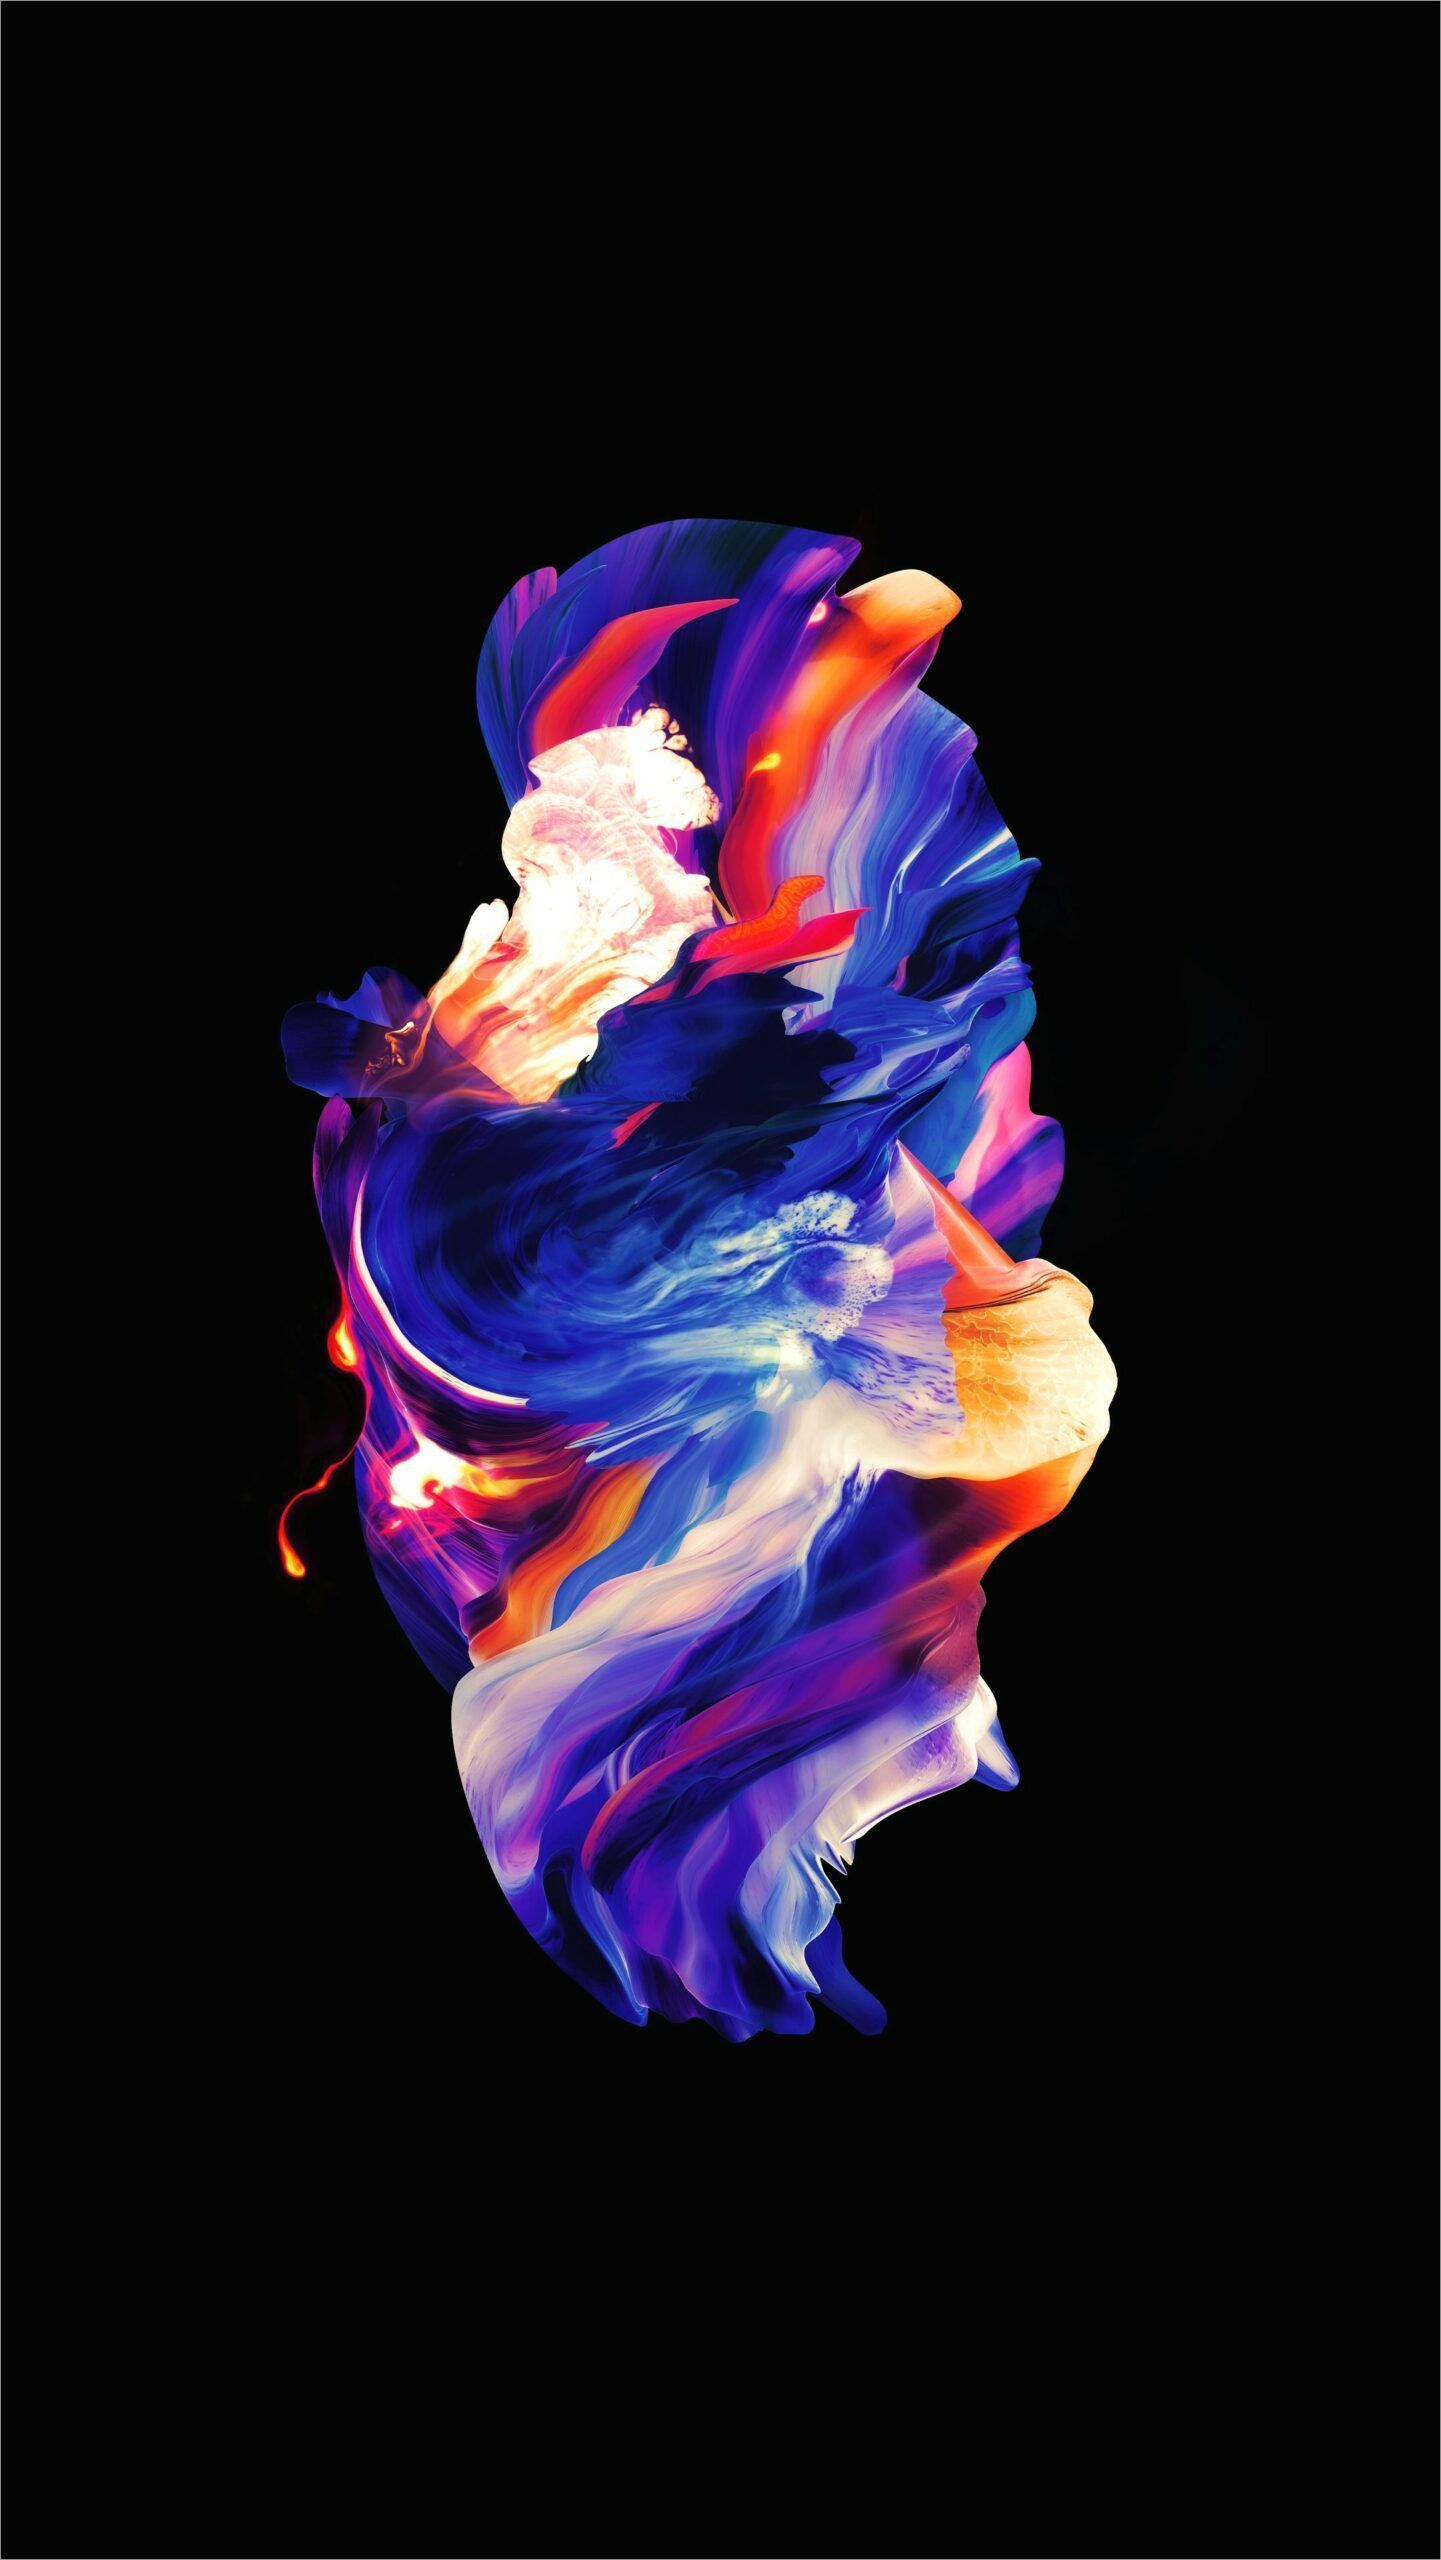 4k Amoled Wallpaper For Mobile In 2020 Background Hd Wallpaper Black Hd Wallpaper Oneplus Wallpapers